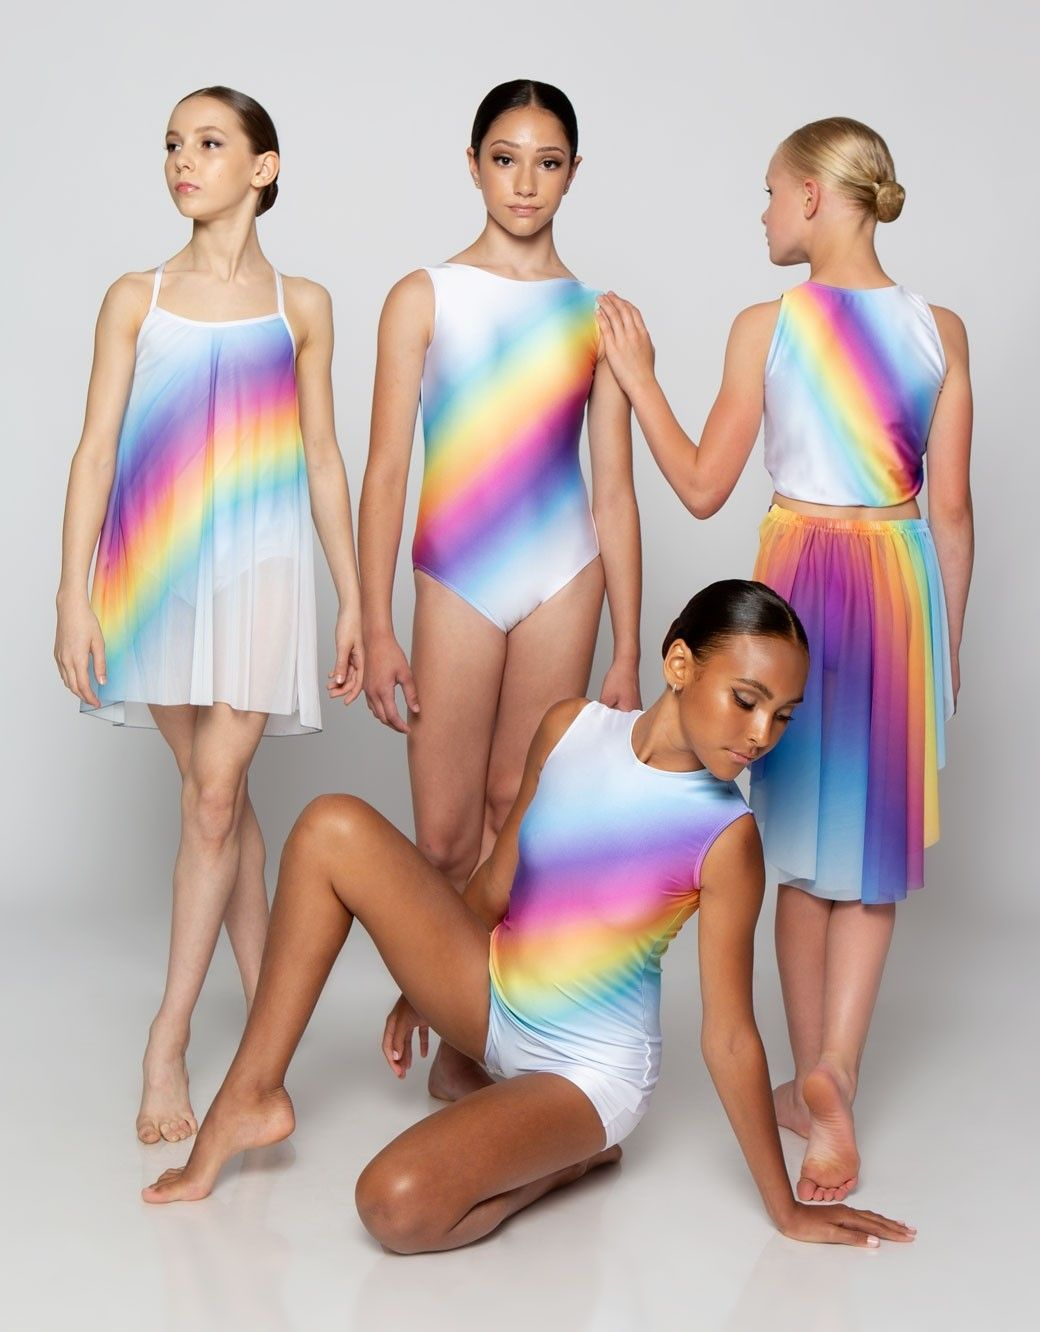 Pin By Esther Carlin On Comp Season In 2020 Rainbow Dance Dance Costumes Dance